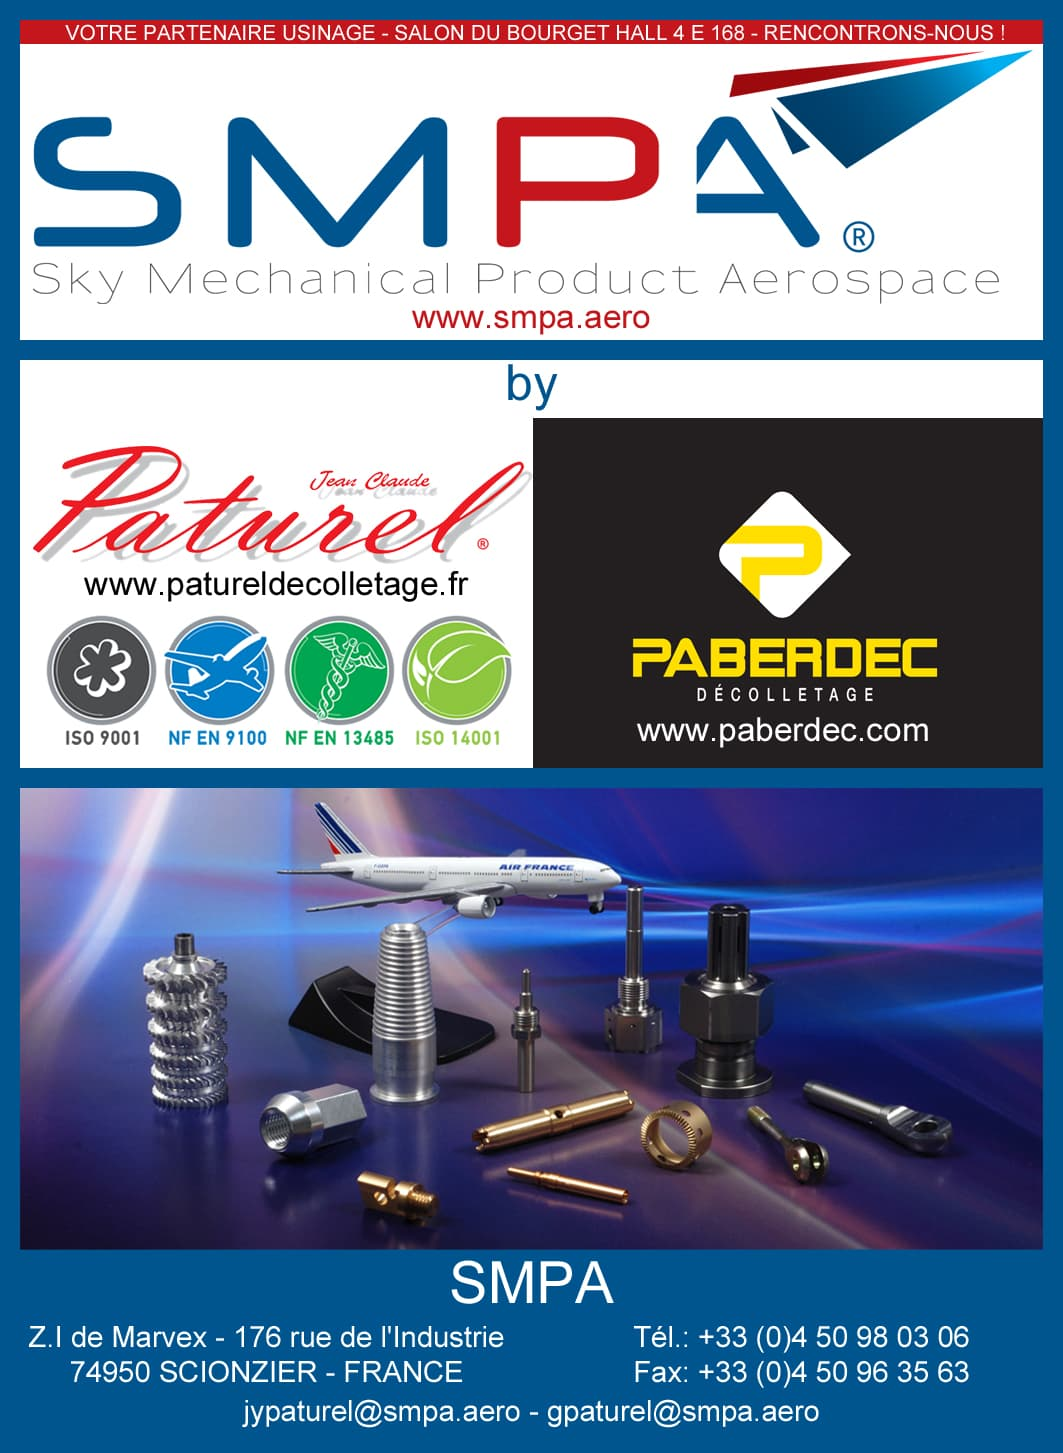 SMPA present at the Paris Air Show